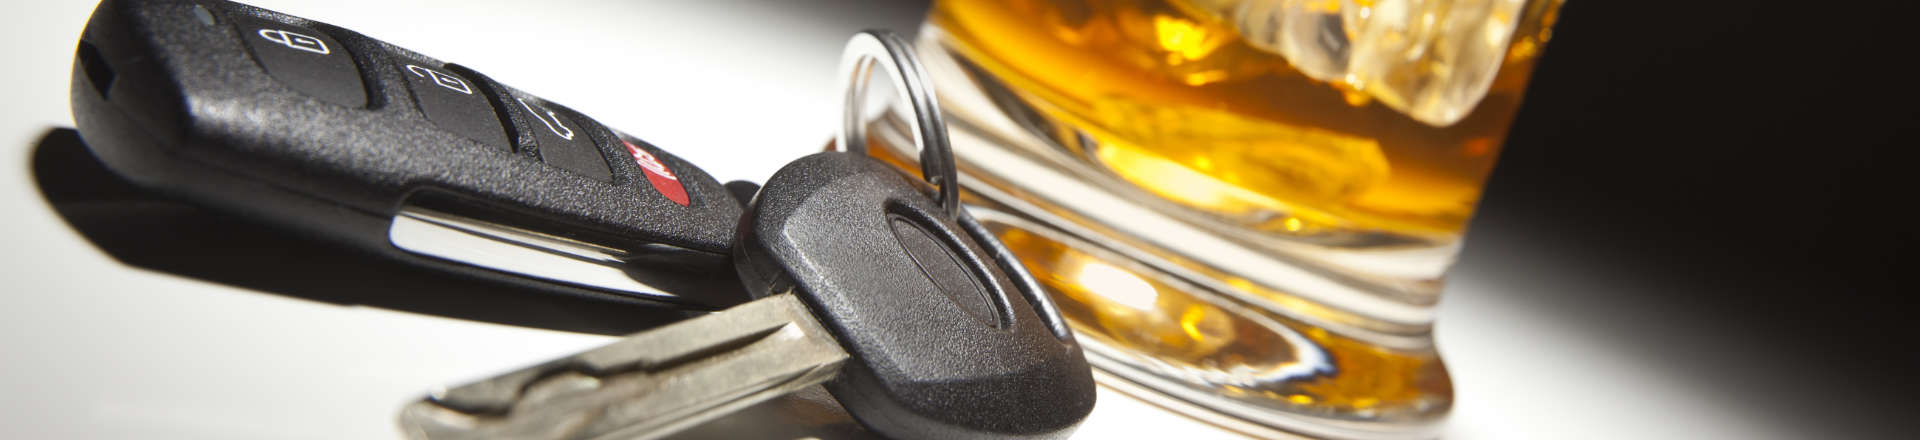 car keys next to a glass with drink